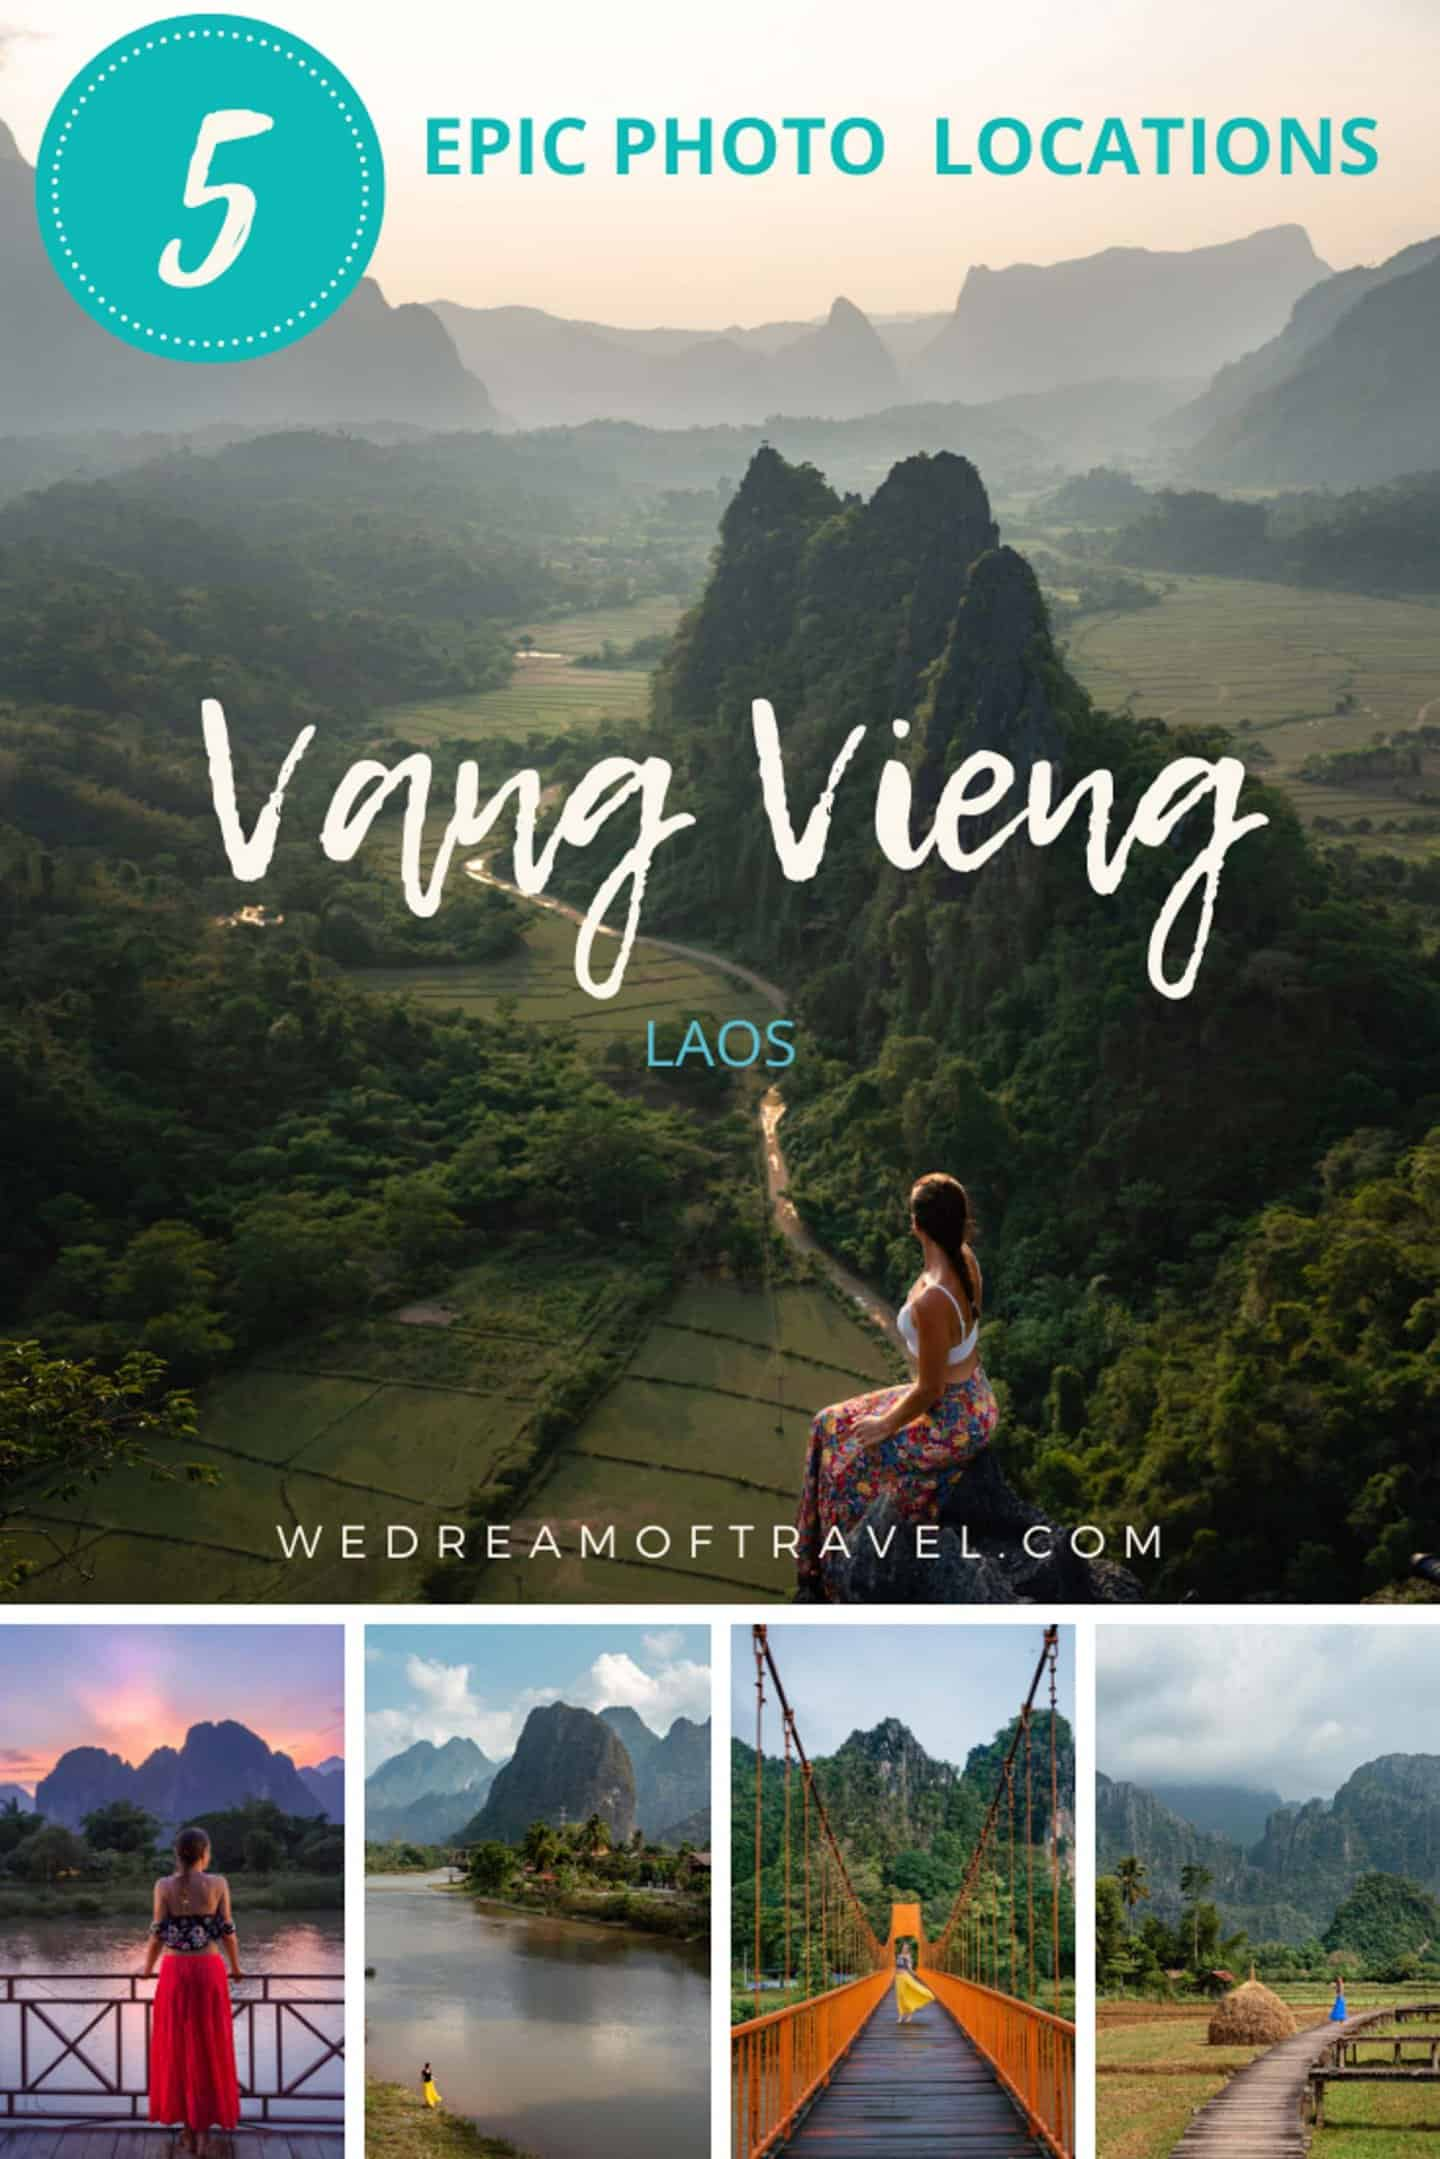 The most instagrammable locations in Vang Vieng.  The top 5 photo spots in Vang Vieng, Laos to help you find those perfect Instagram-worthy locations.  #instagrammable #travelguide #laos #vangvieng #southeastasia #photography